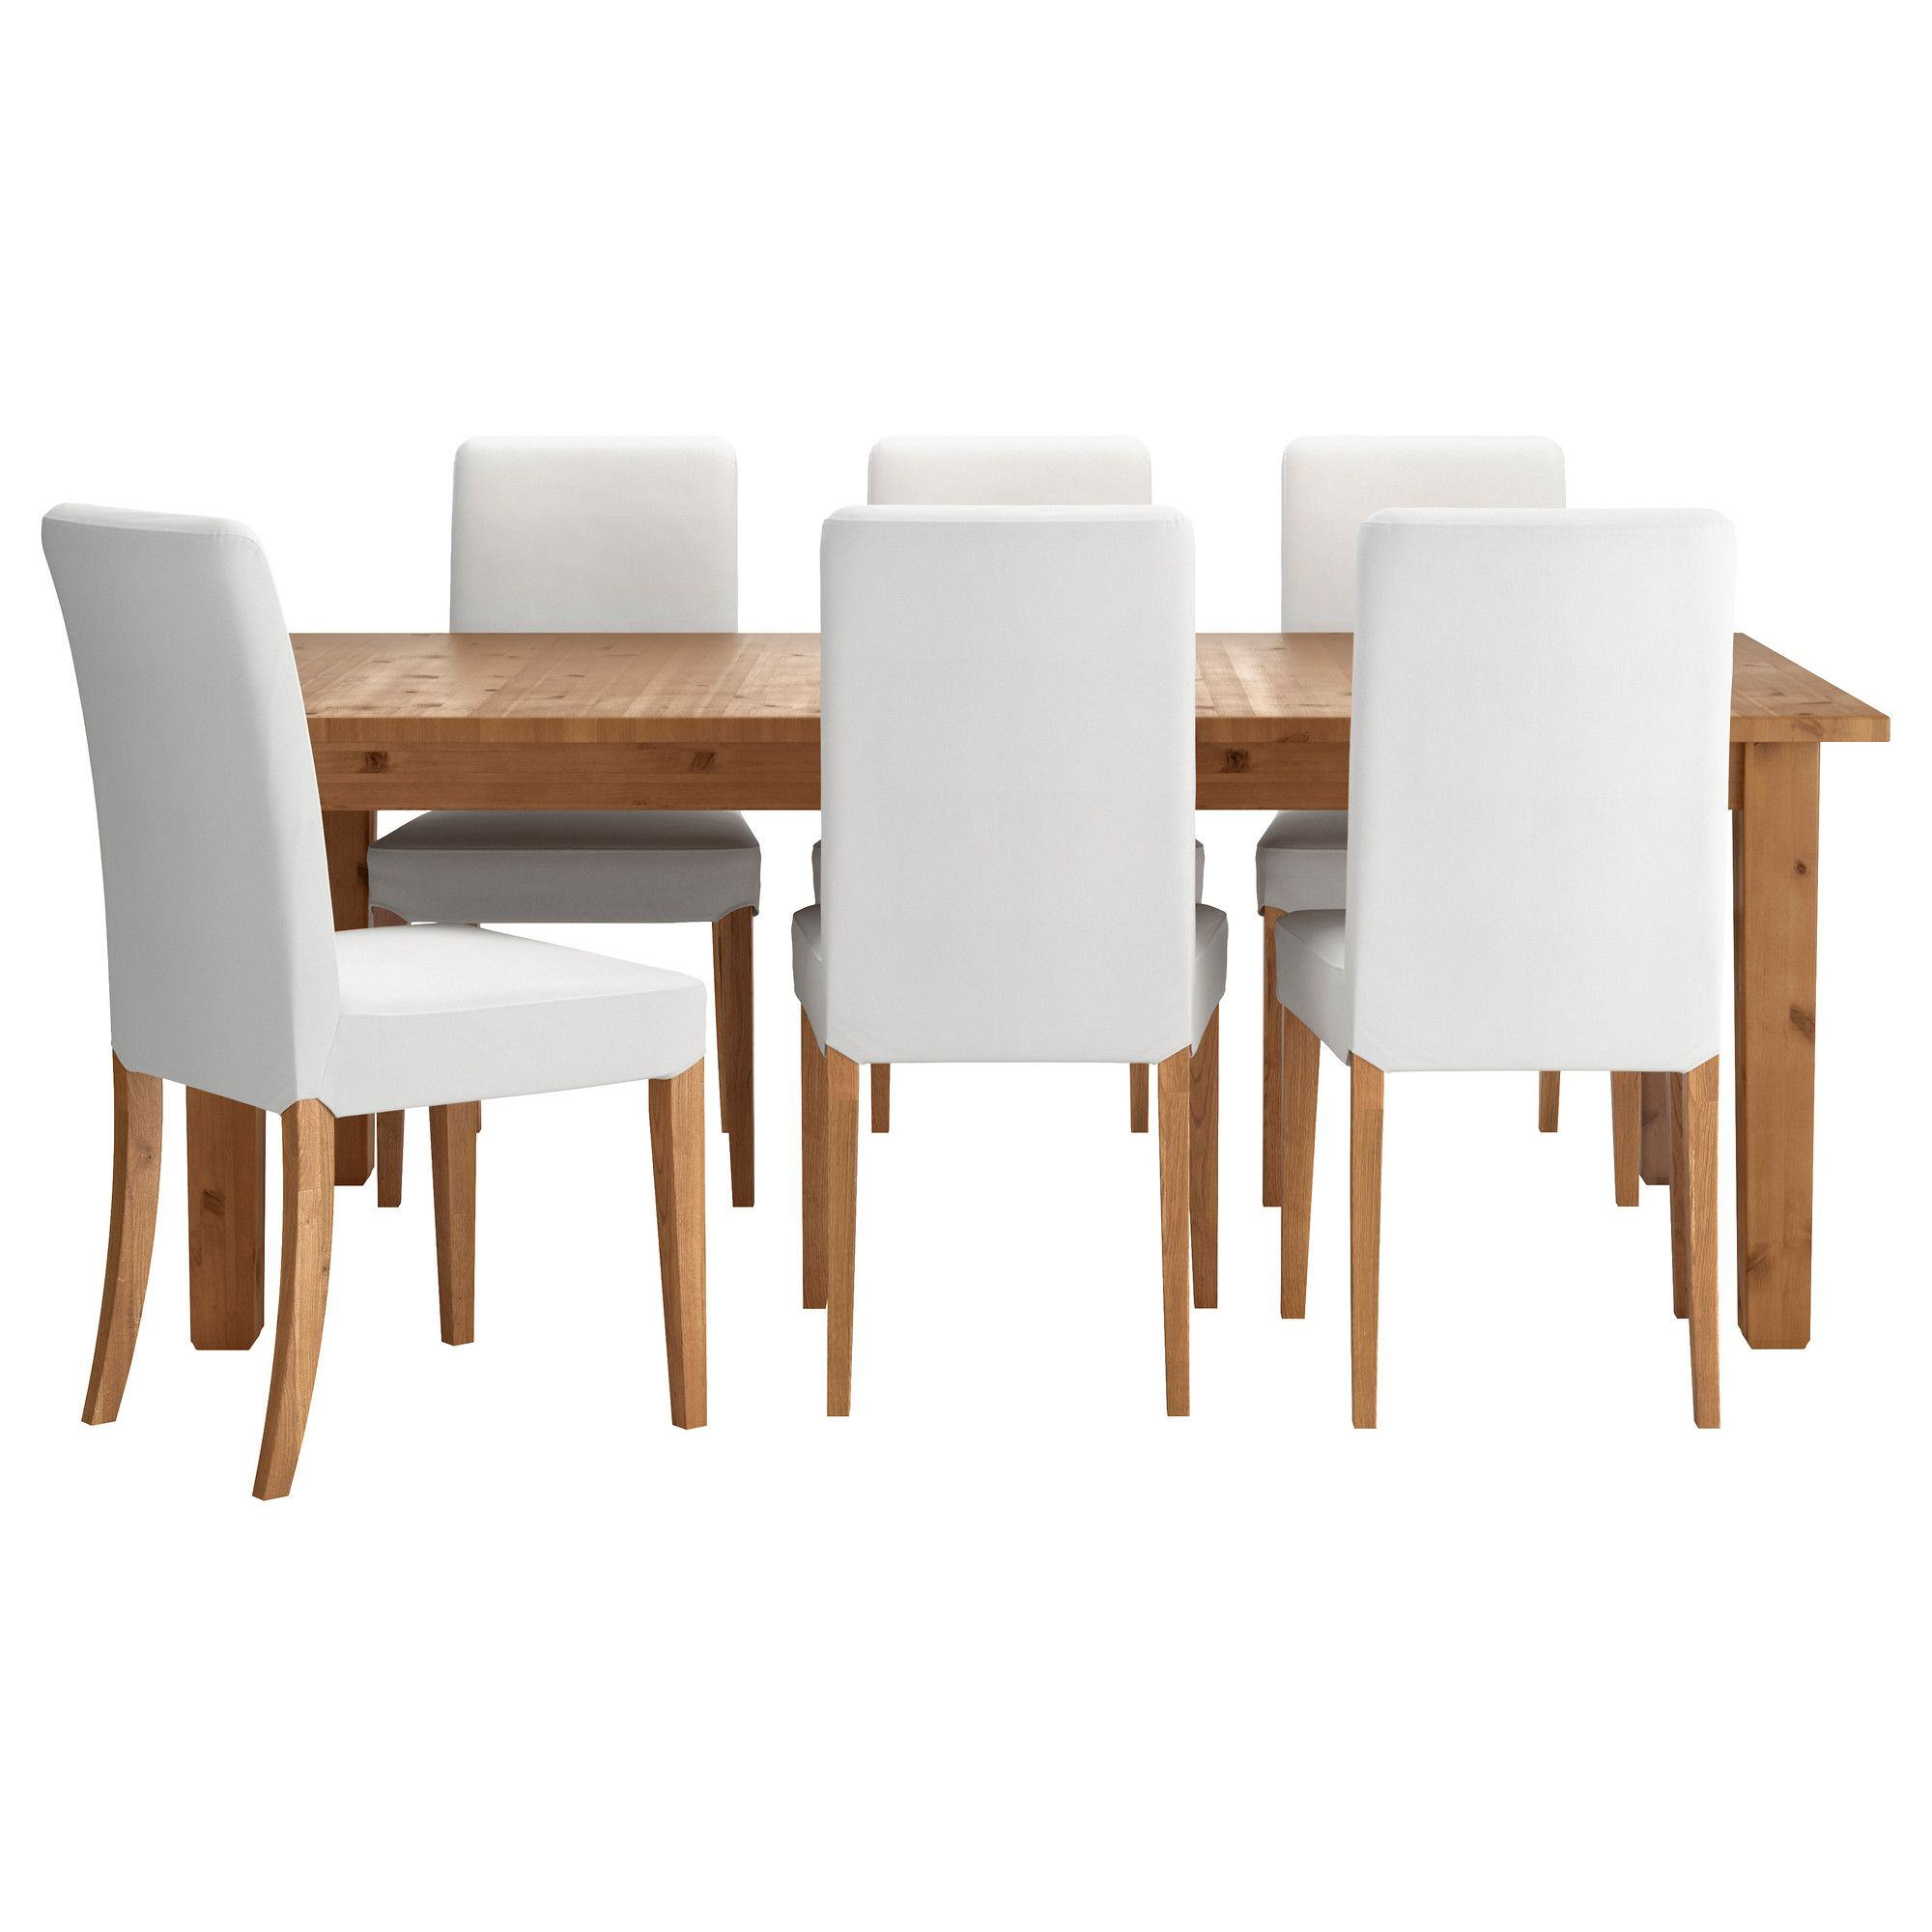 HENRIKSDAL/STORNÄS Table and 6 chairs Antique stain/gräsbo white 201 ...